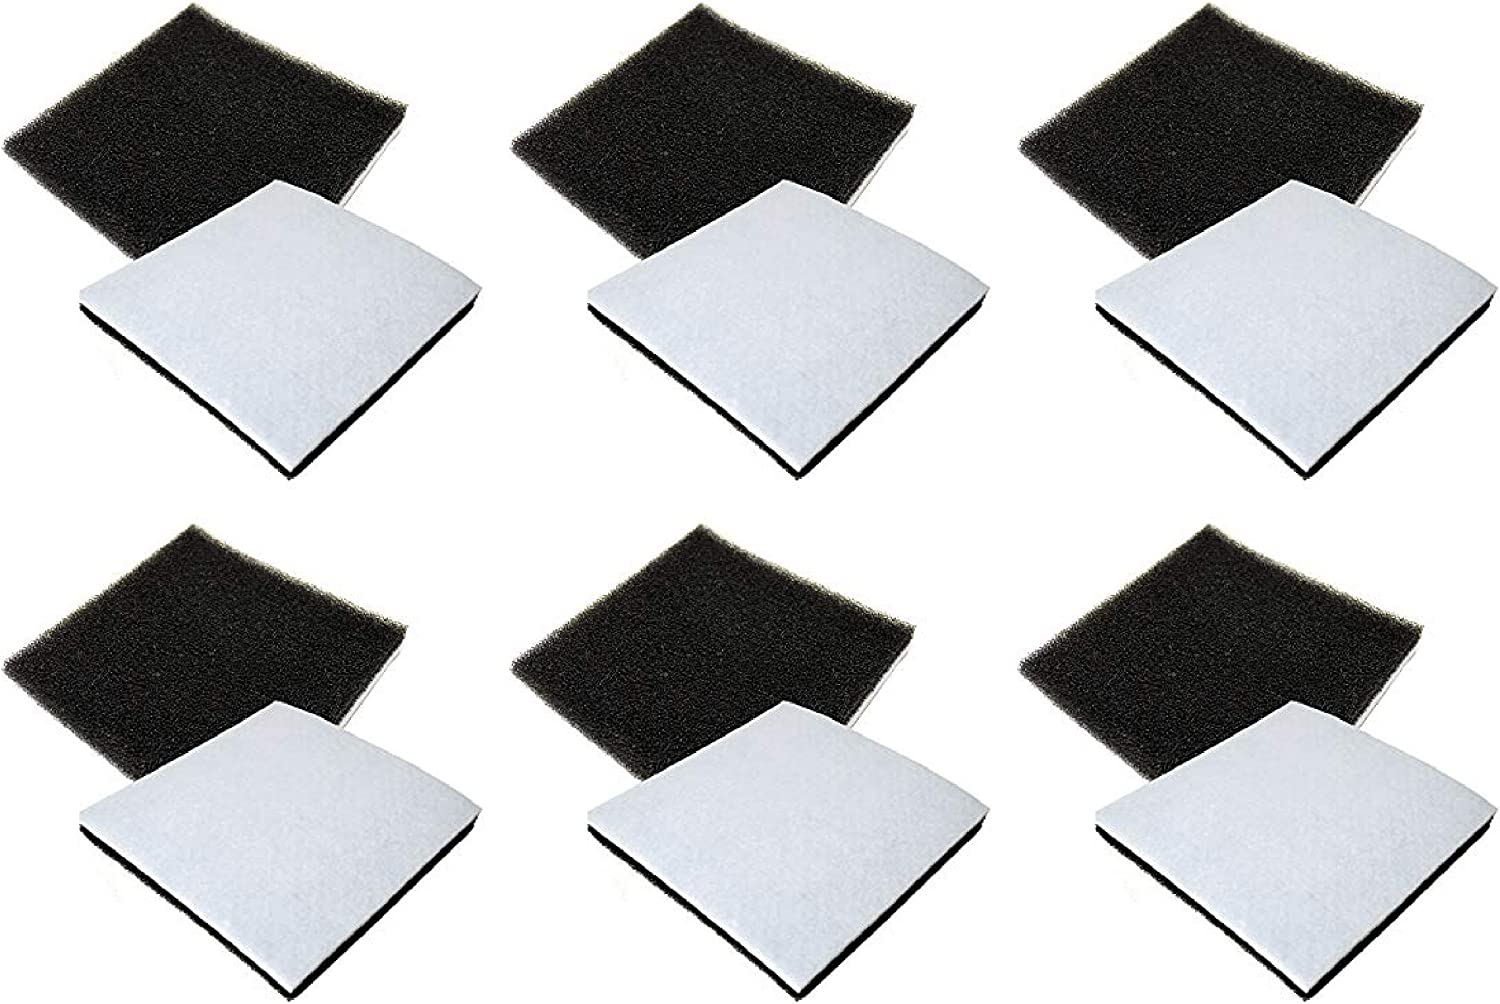 Nispira Replacement Filter Compatible with Sears Kenmore Progressive & Whispertone, Panasonic Vacuum. Compared to Part CF1 CF-1, 86883, MCV9568 and AC37KAKTZ000, 12 Filters